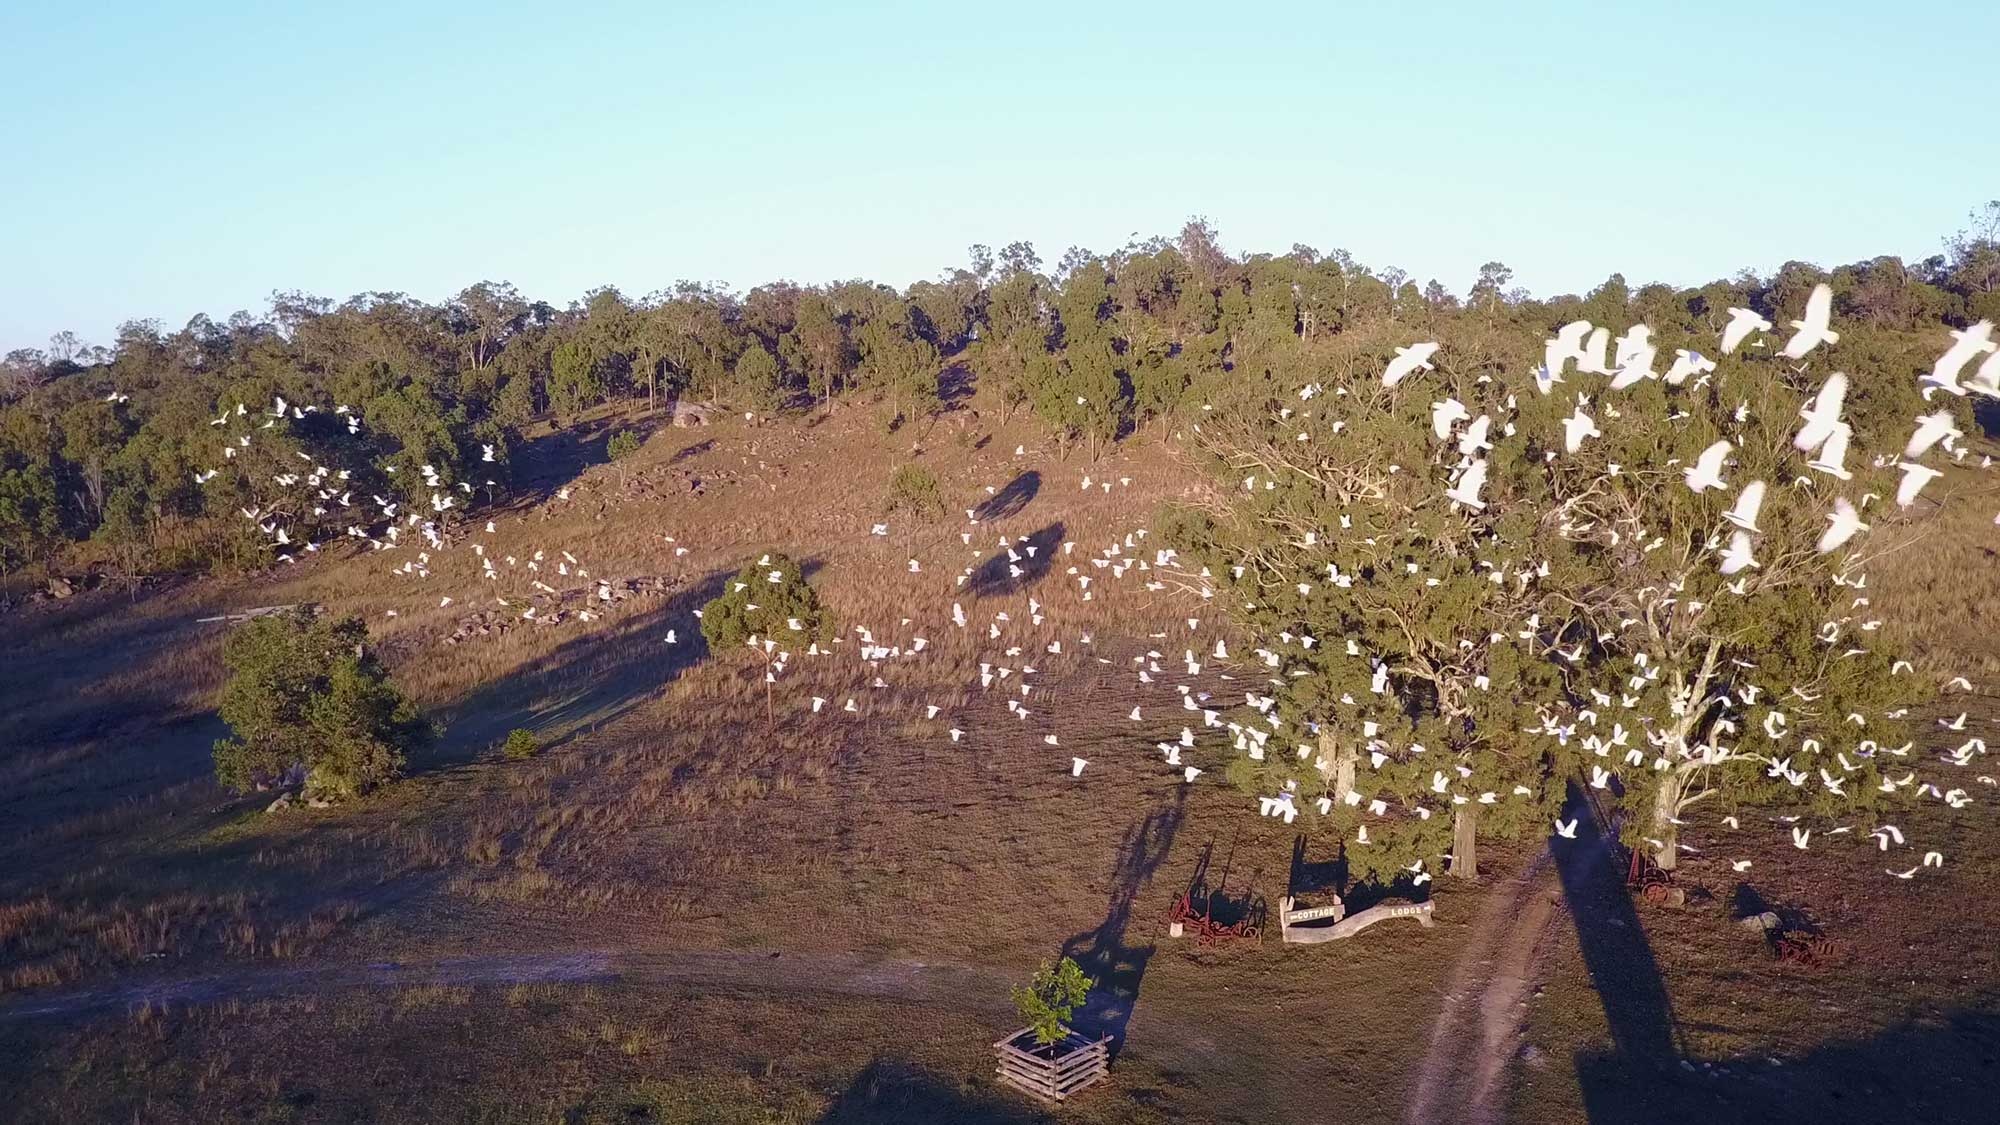 BunyipSprings FarmStay Early morning drone photography native birds